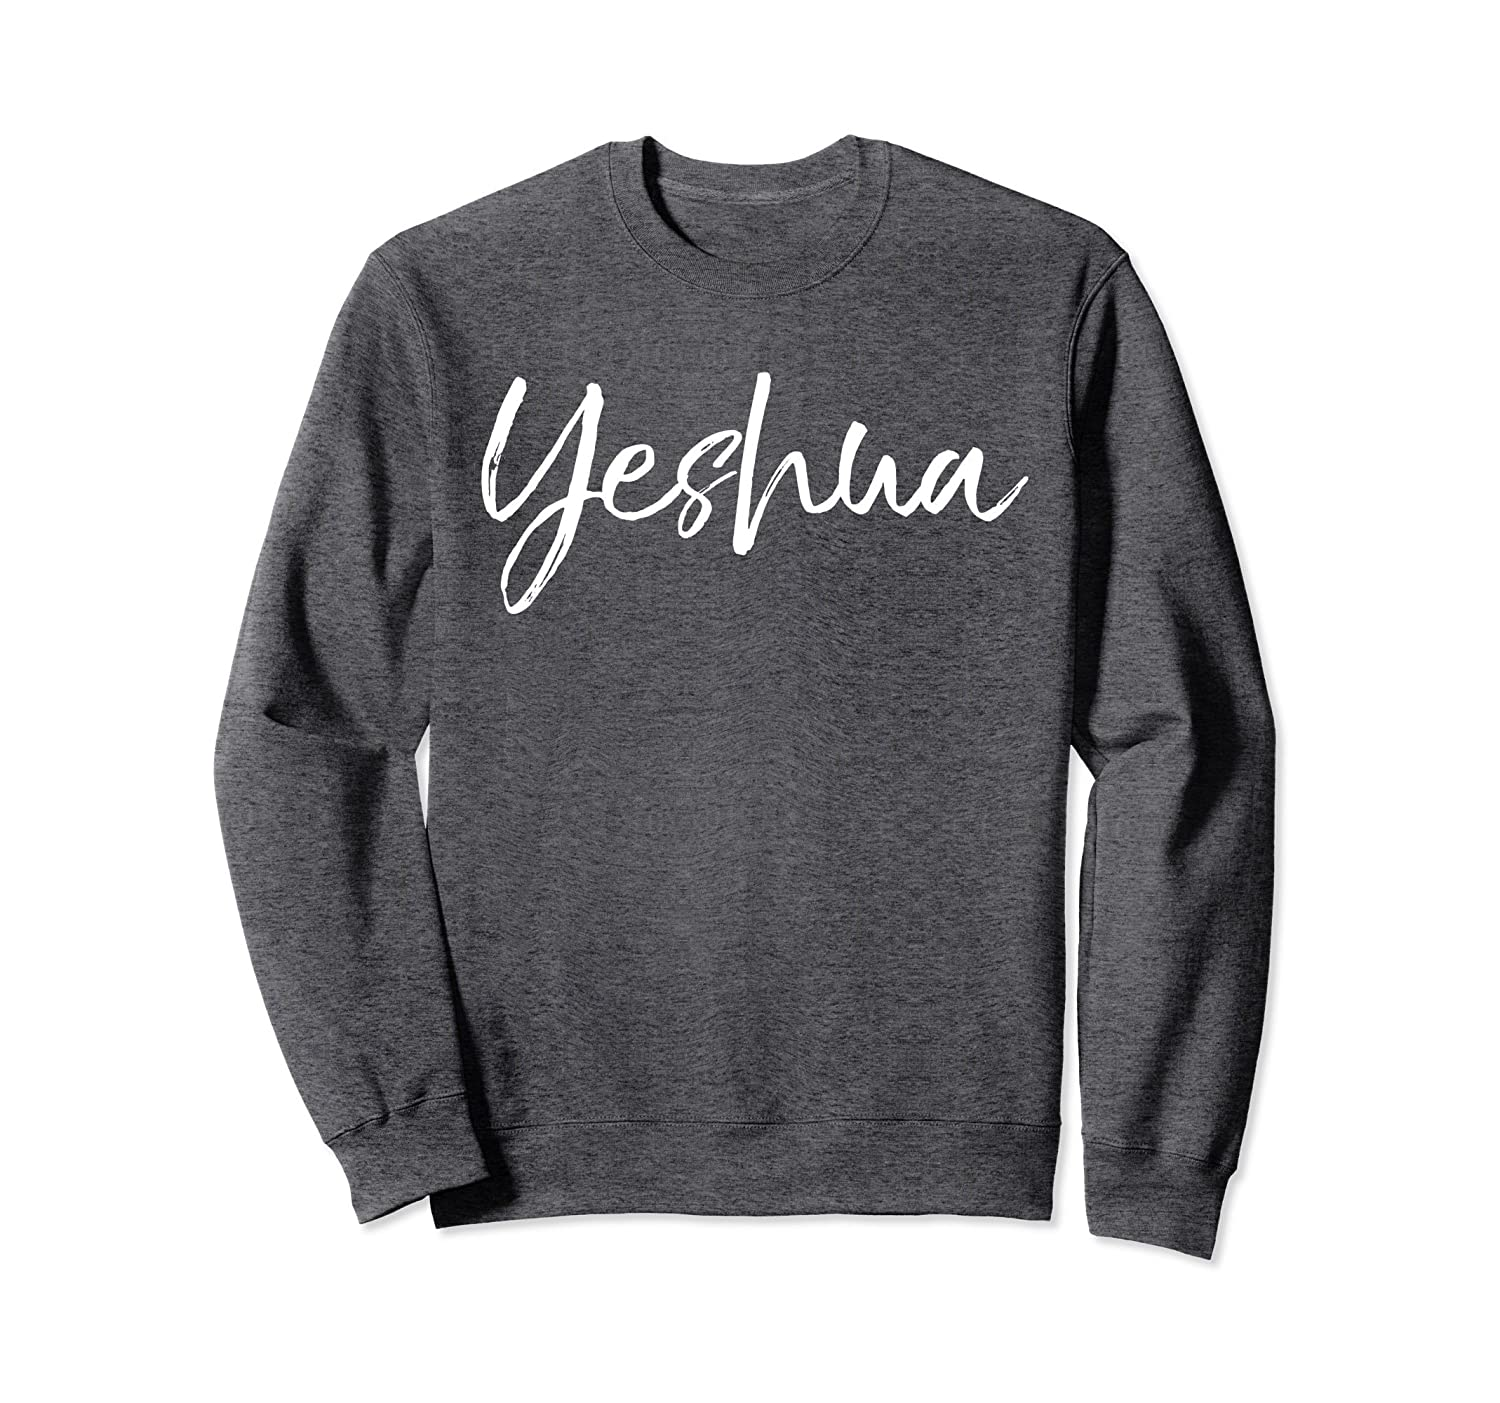 Yeshua Sweatshirt Cute Christian Hebrew Name of Jesus Sweats-ah my shirt one gift